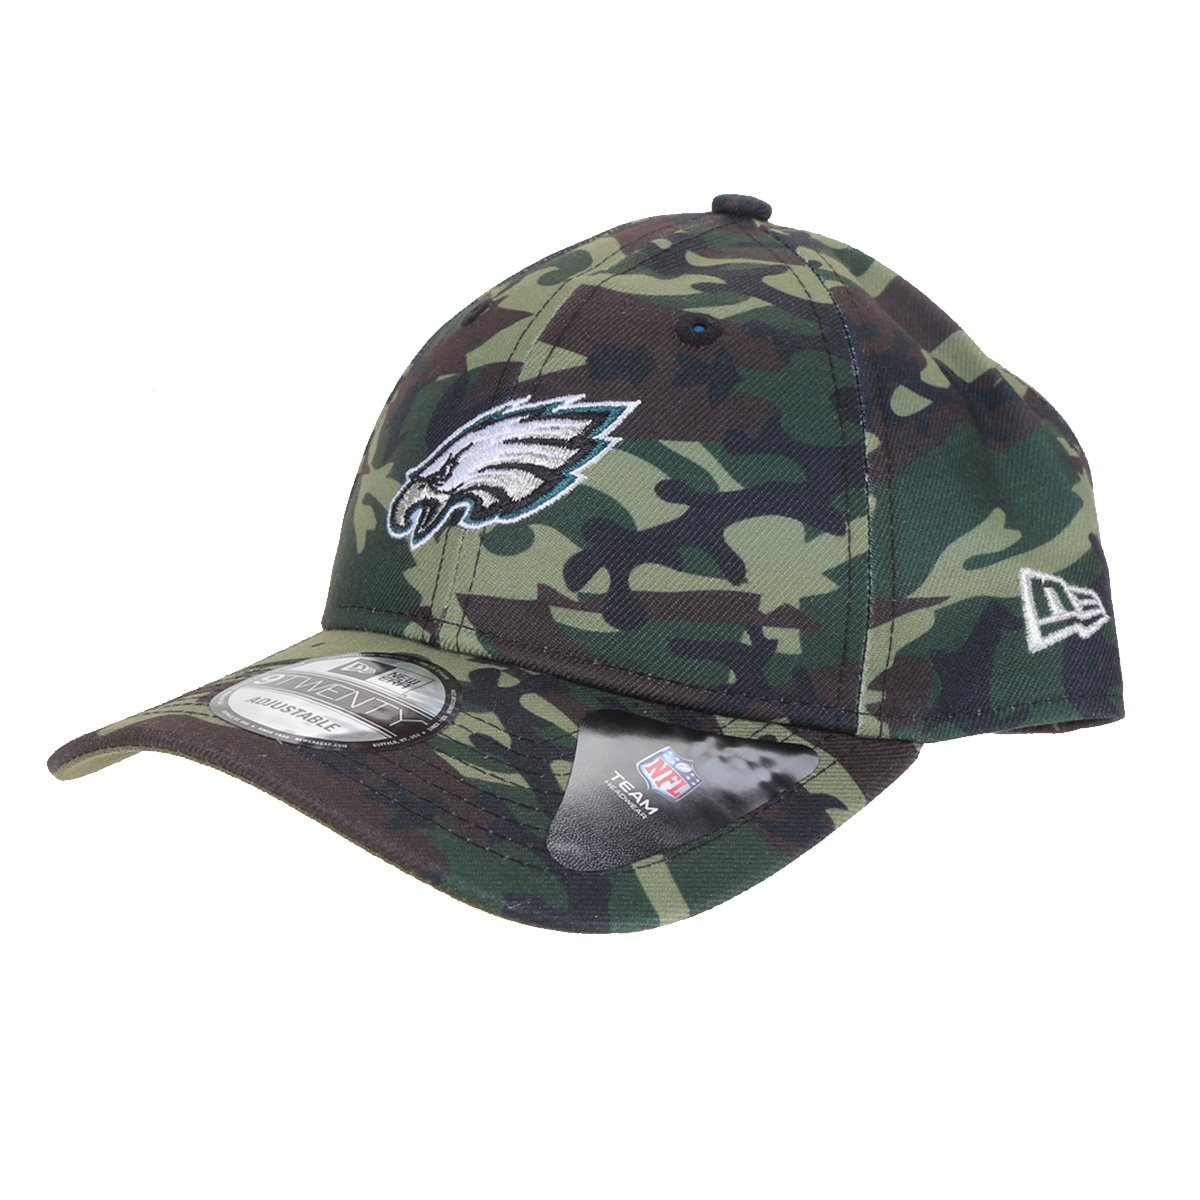 Boné New Era NFL Philadelphia Eagles Aba Curva Strapback Military Full Print 9Twenty